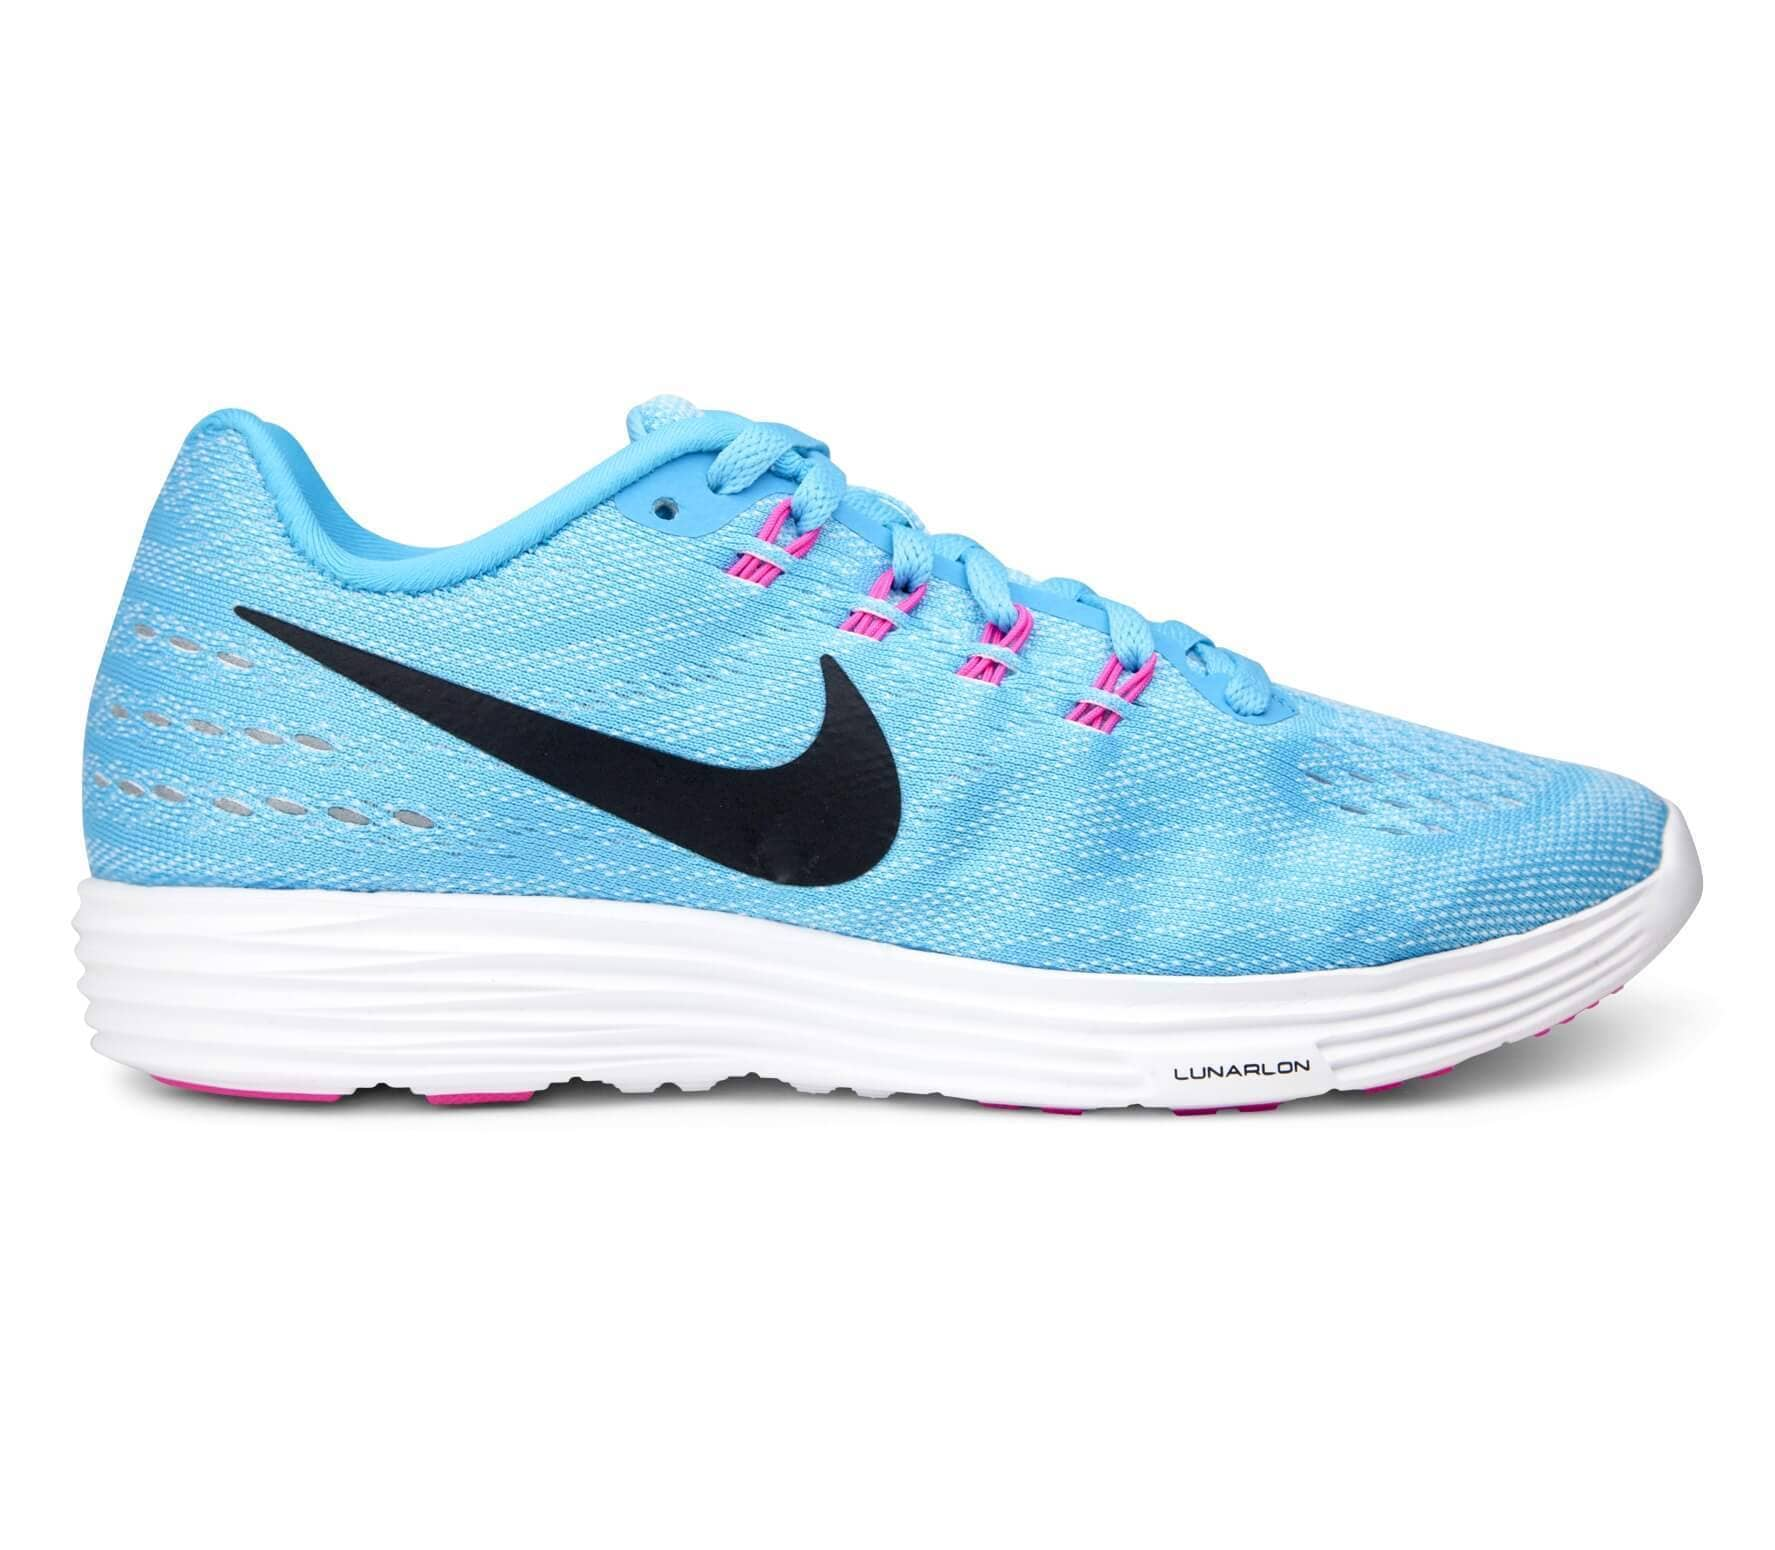 2454abf7bb6c7 ... ireland nike lunartempo 2 womens running shoes light blue pink 7318f  8f9e4